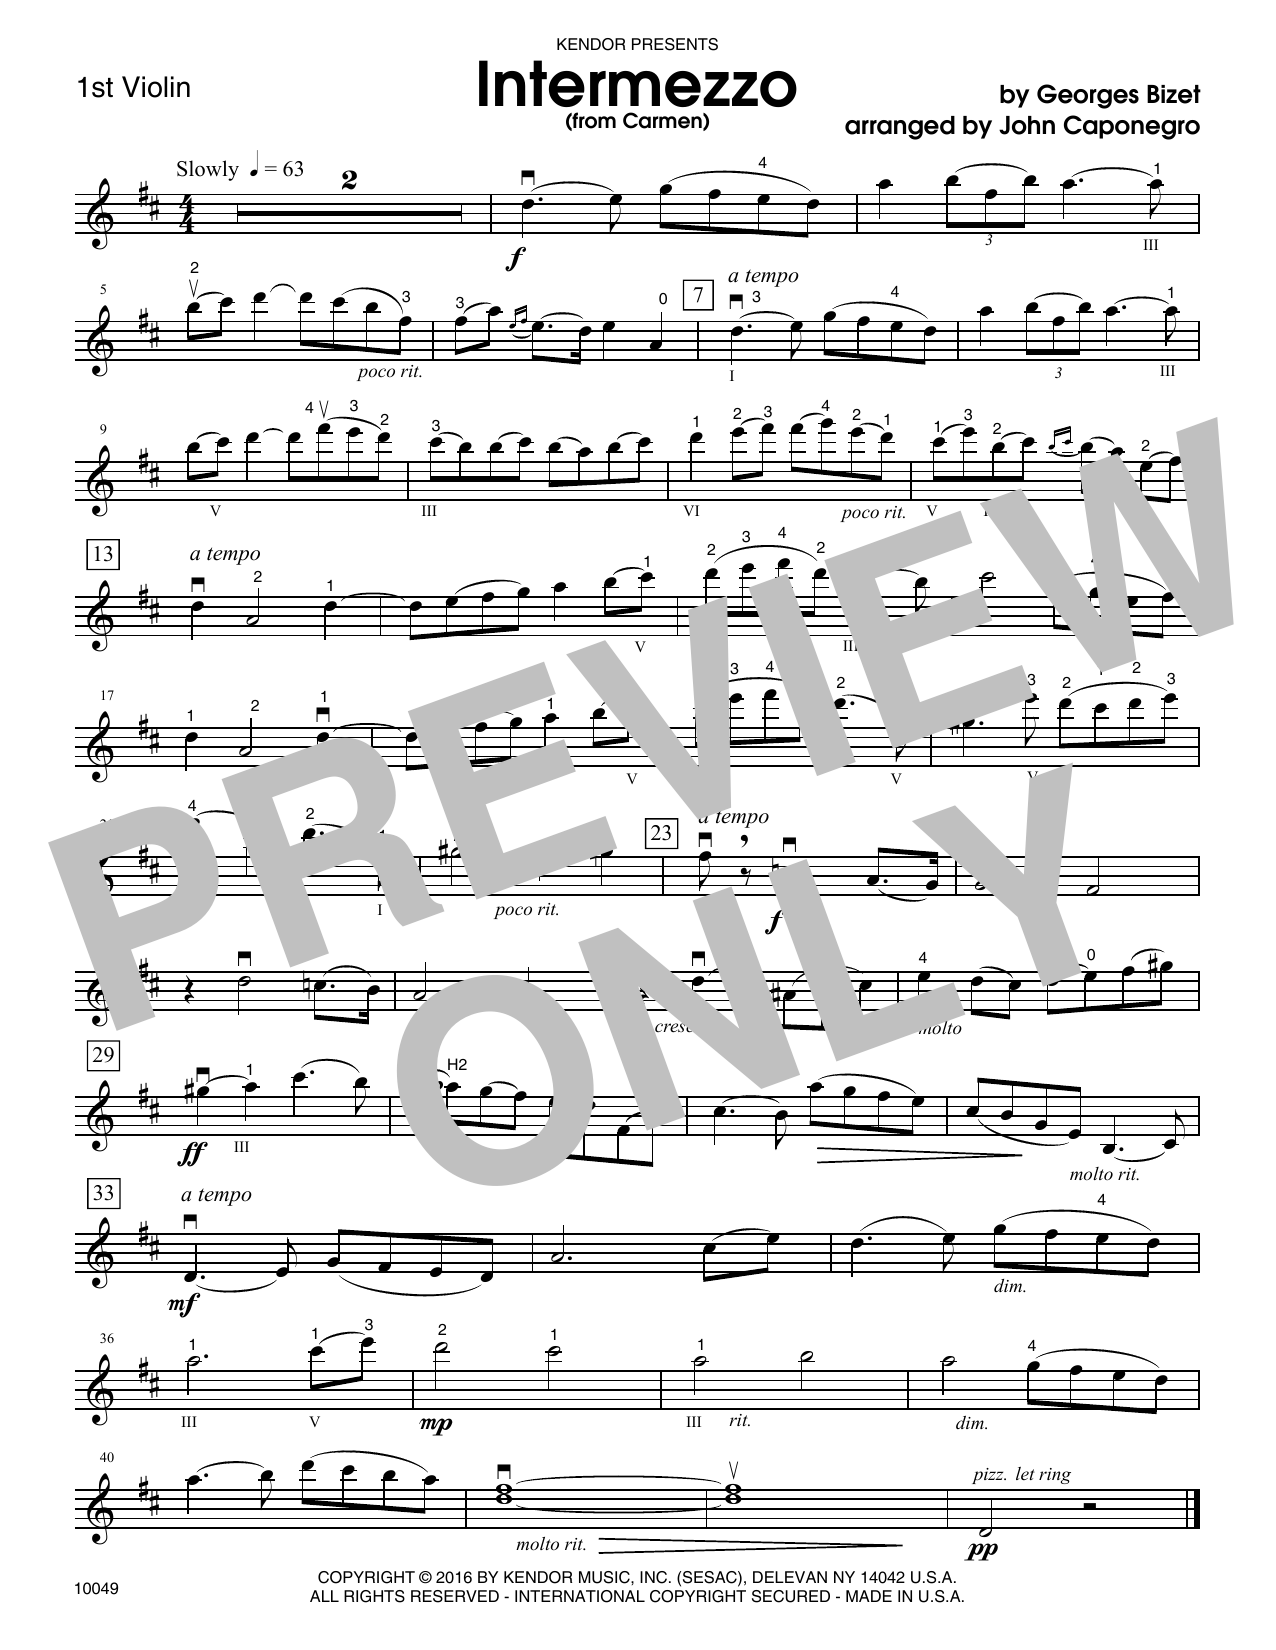 Caponegro Intermezzo (from Carmen) - 1st Violin sheet music notes and chords. Download Printable PDF.